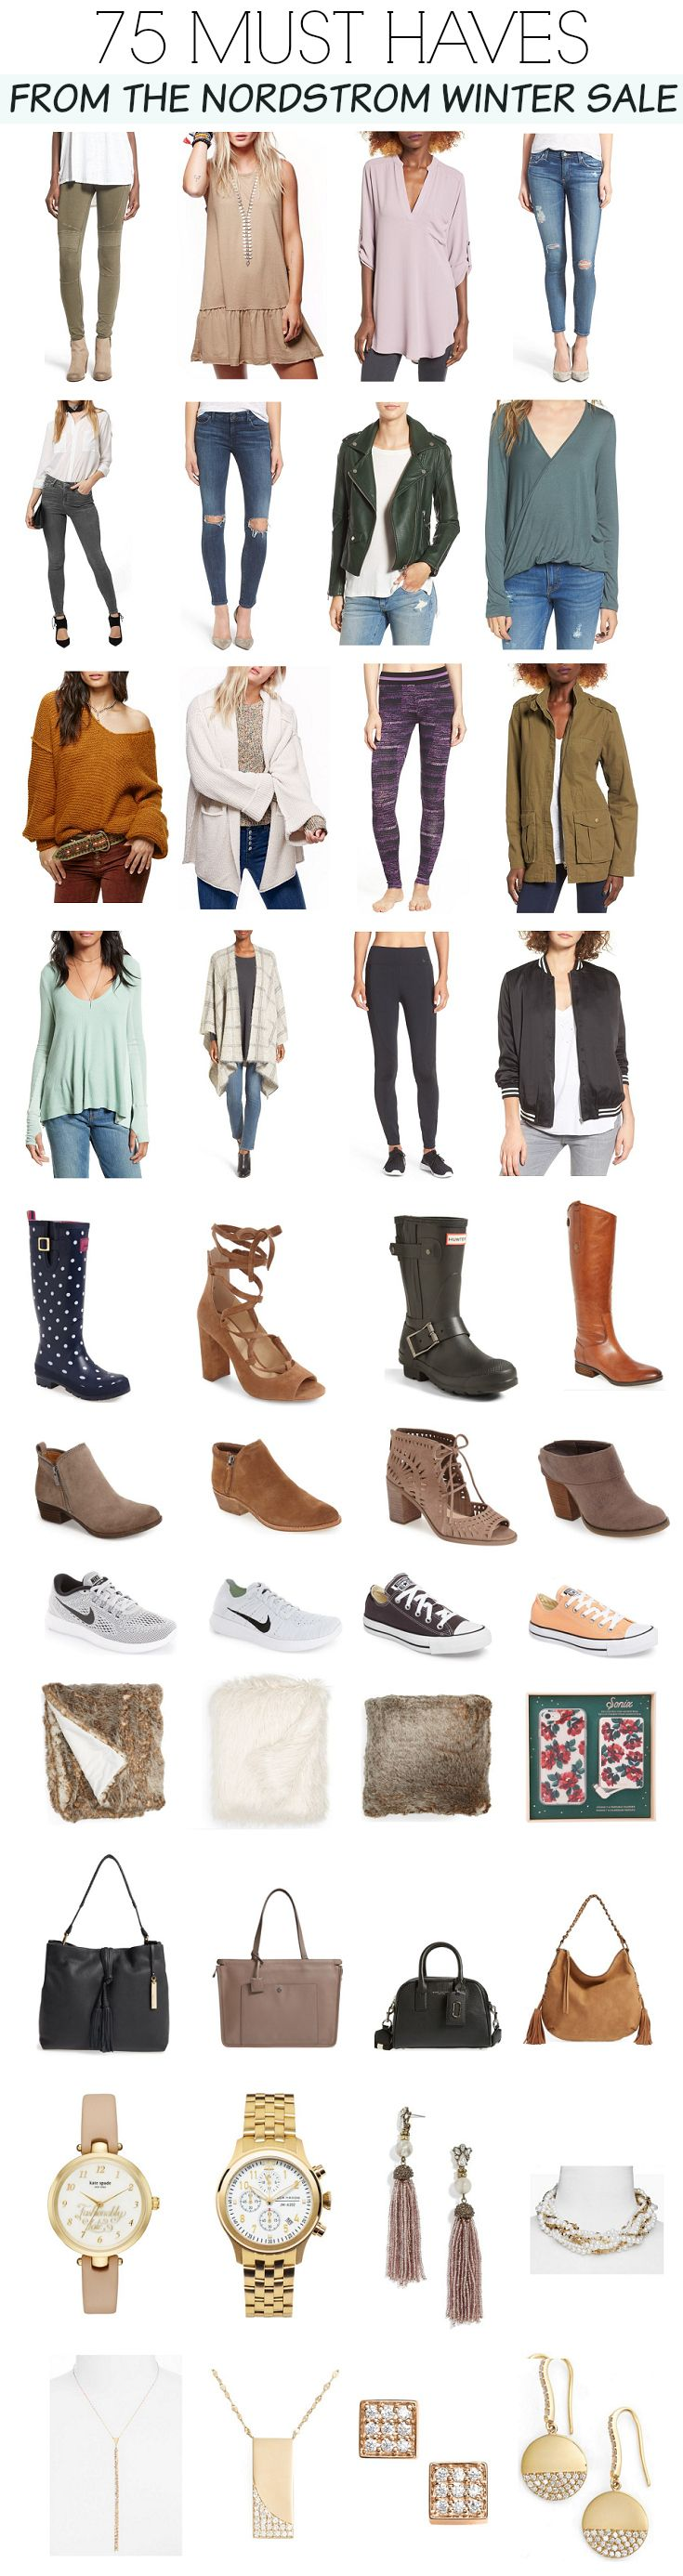 75 incredible deals from the Nordstrom Winter Sale! Stock up on wardrobe staples now! | winter style | winter fashion | fashion for winter | style for winter | cold weather fashion | winter clothing sales || Katie Did What